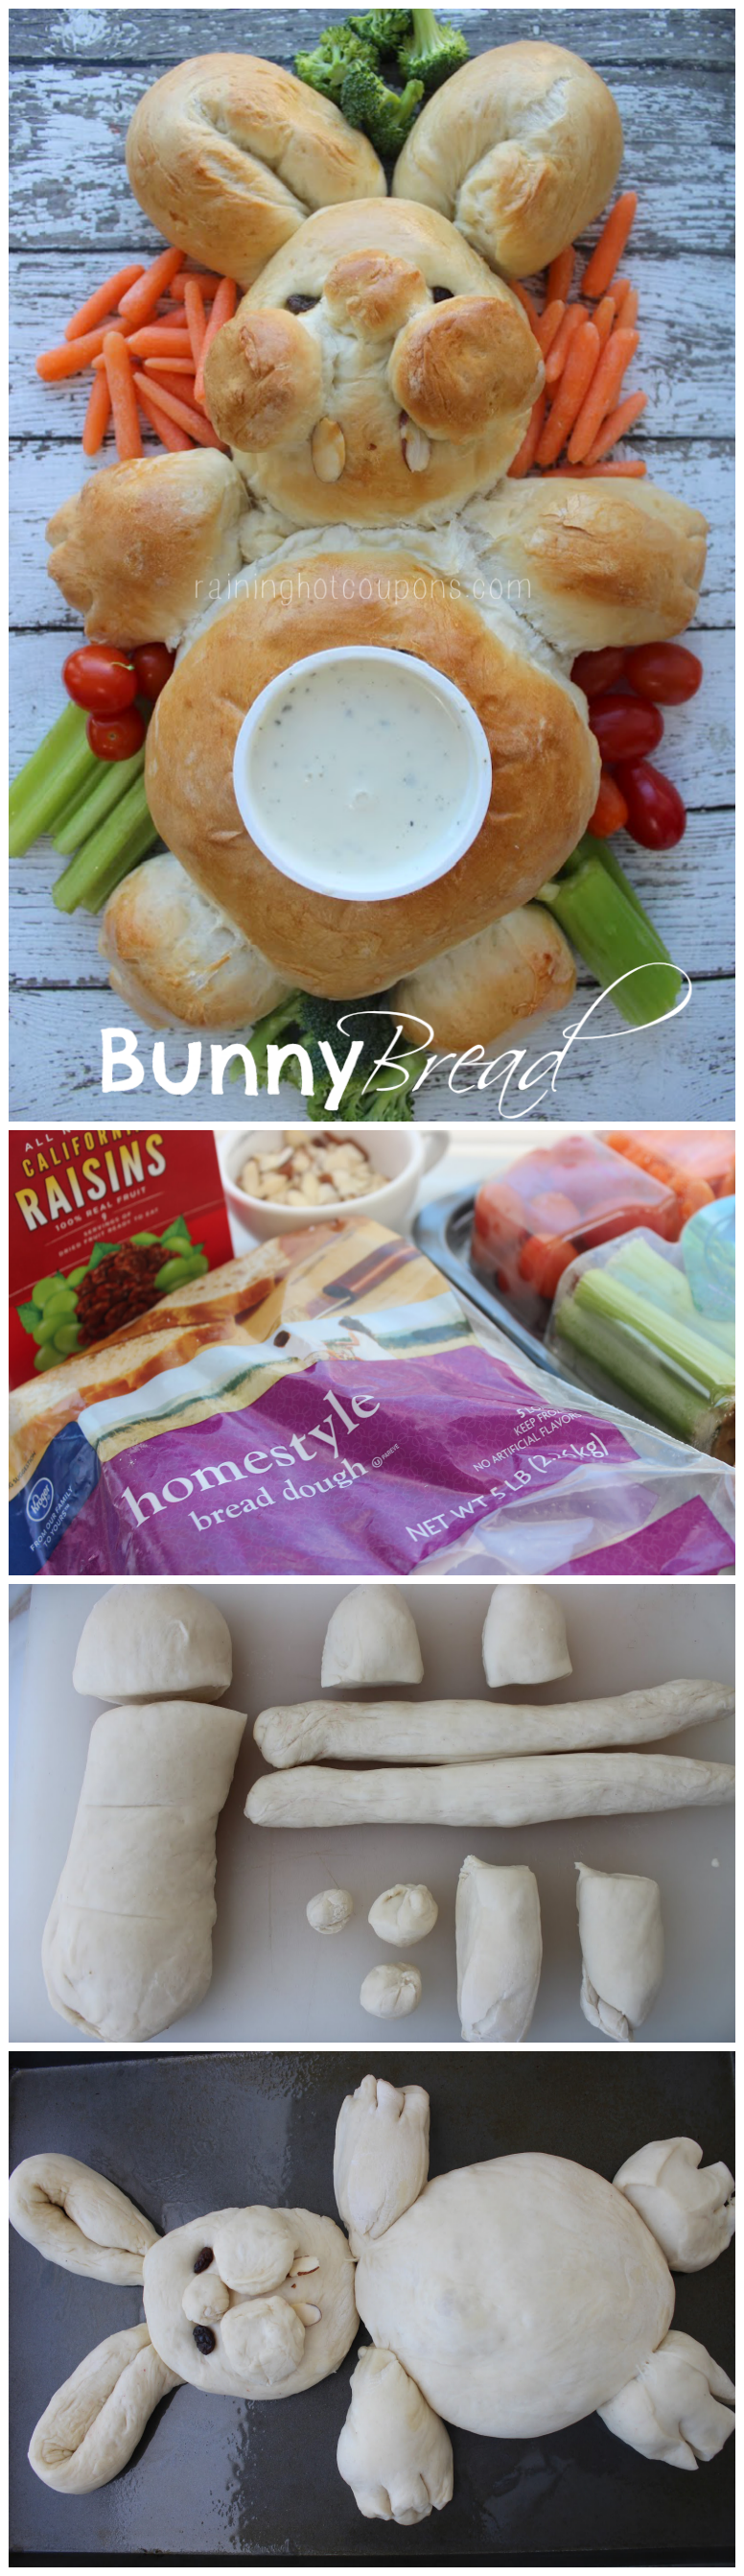 bunny bread collage